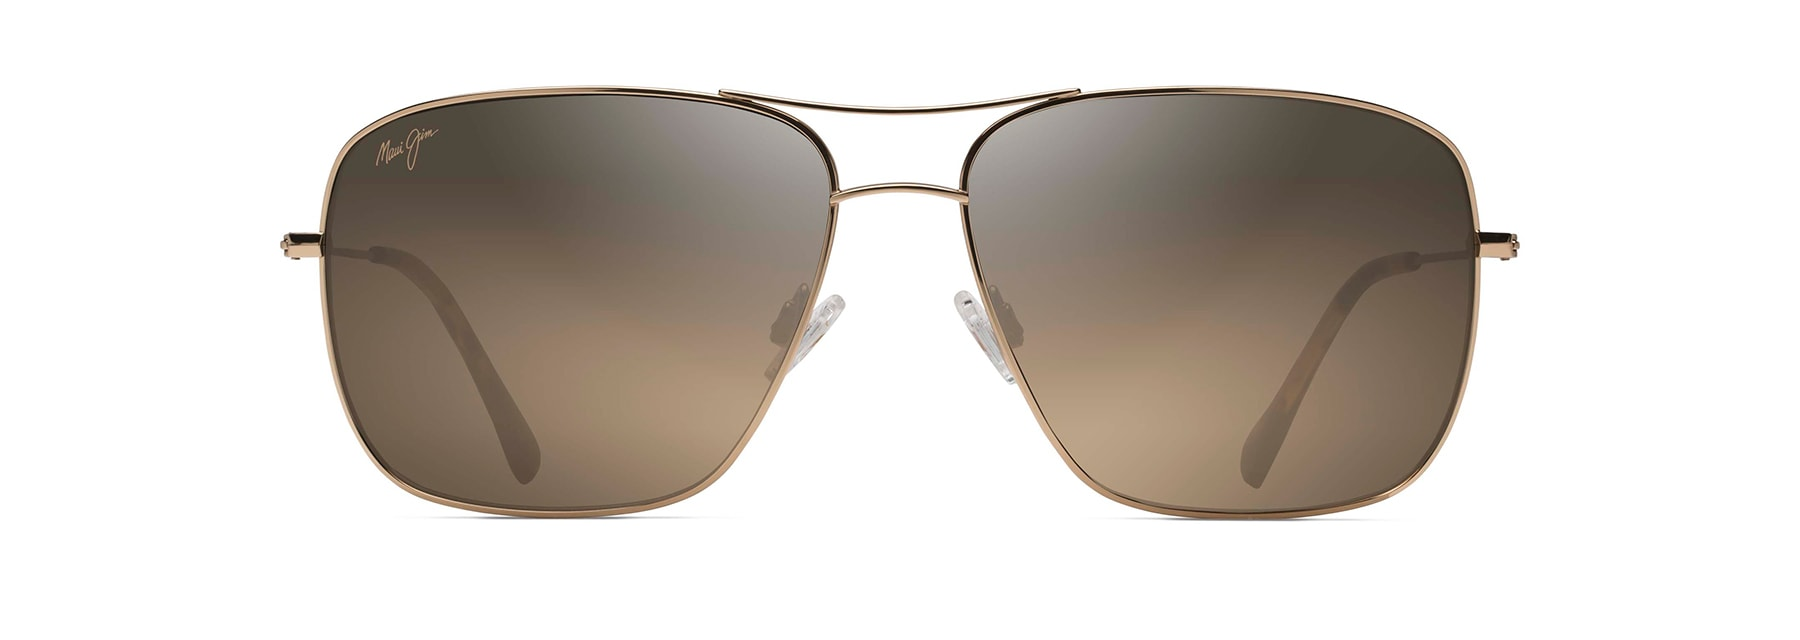 8764137a2a1f Cook Pines Polarised Sunglasses